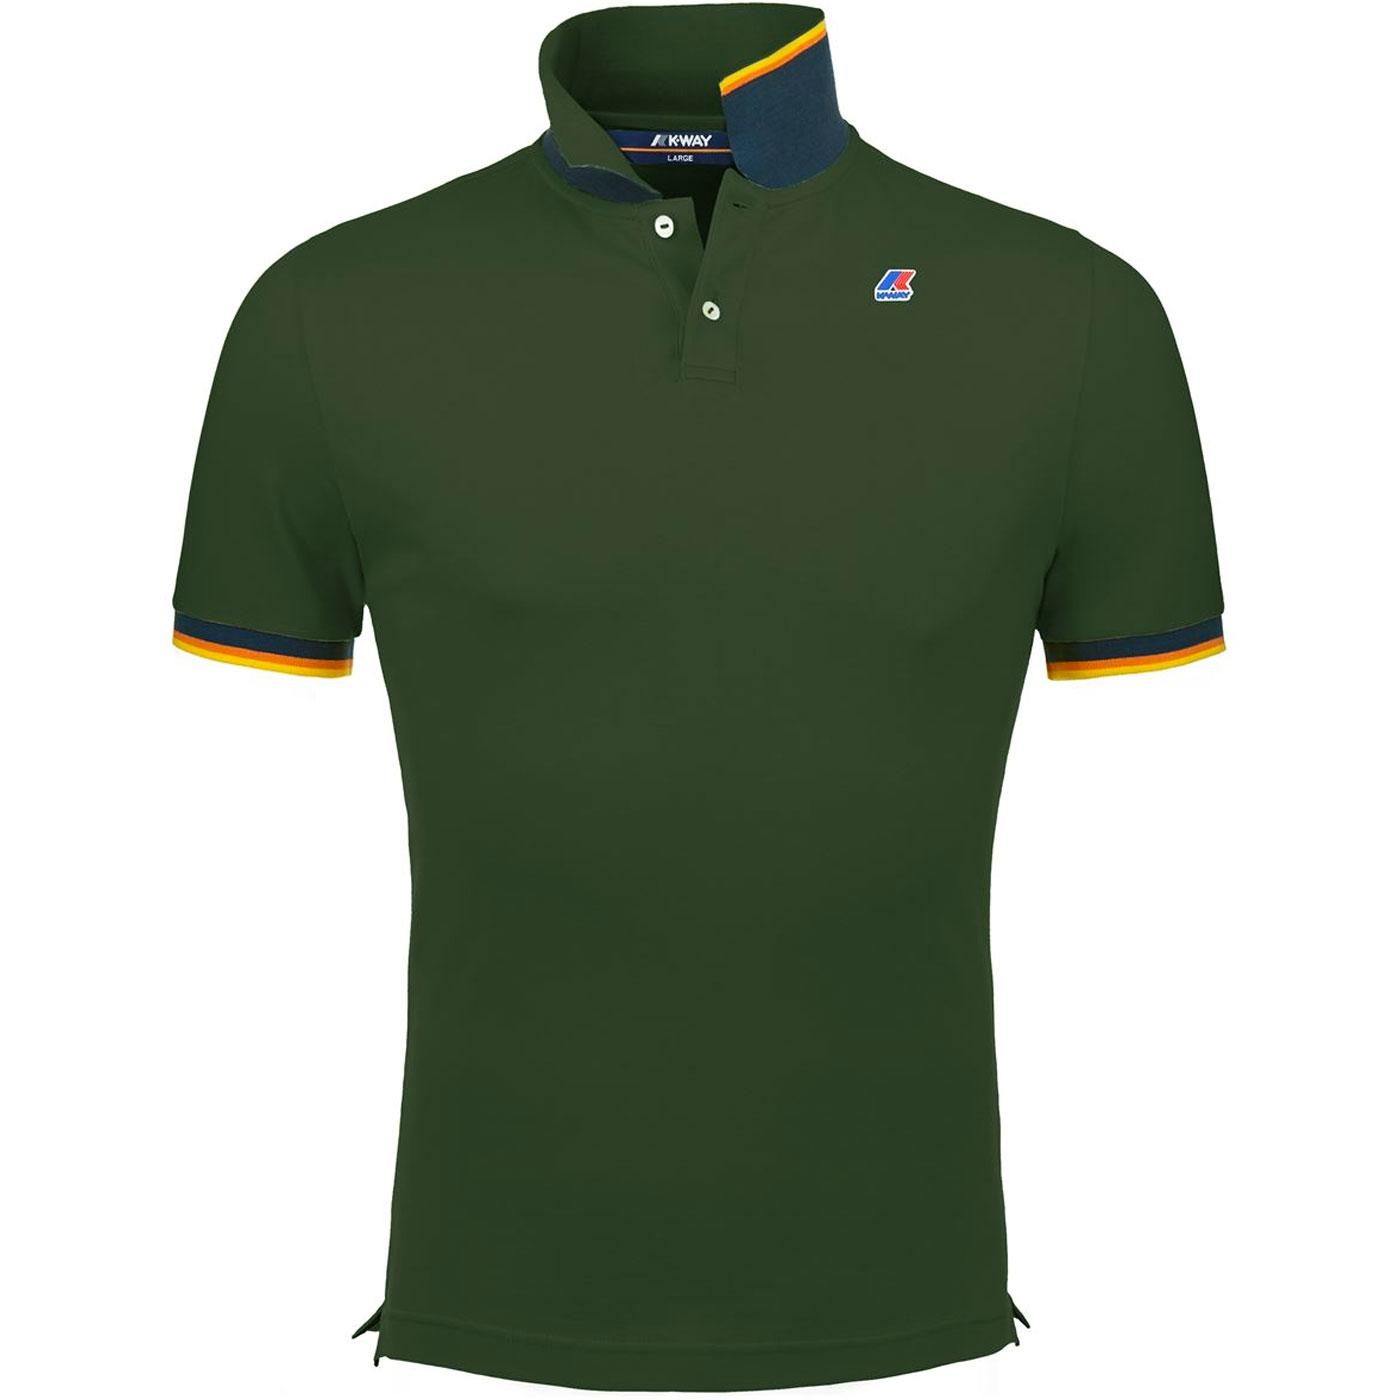 Vincent K-WAY Men's Retro Mod Pique Polo Top GREEN